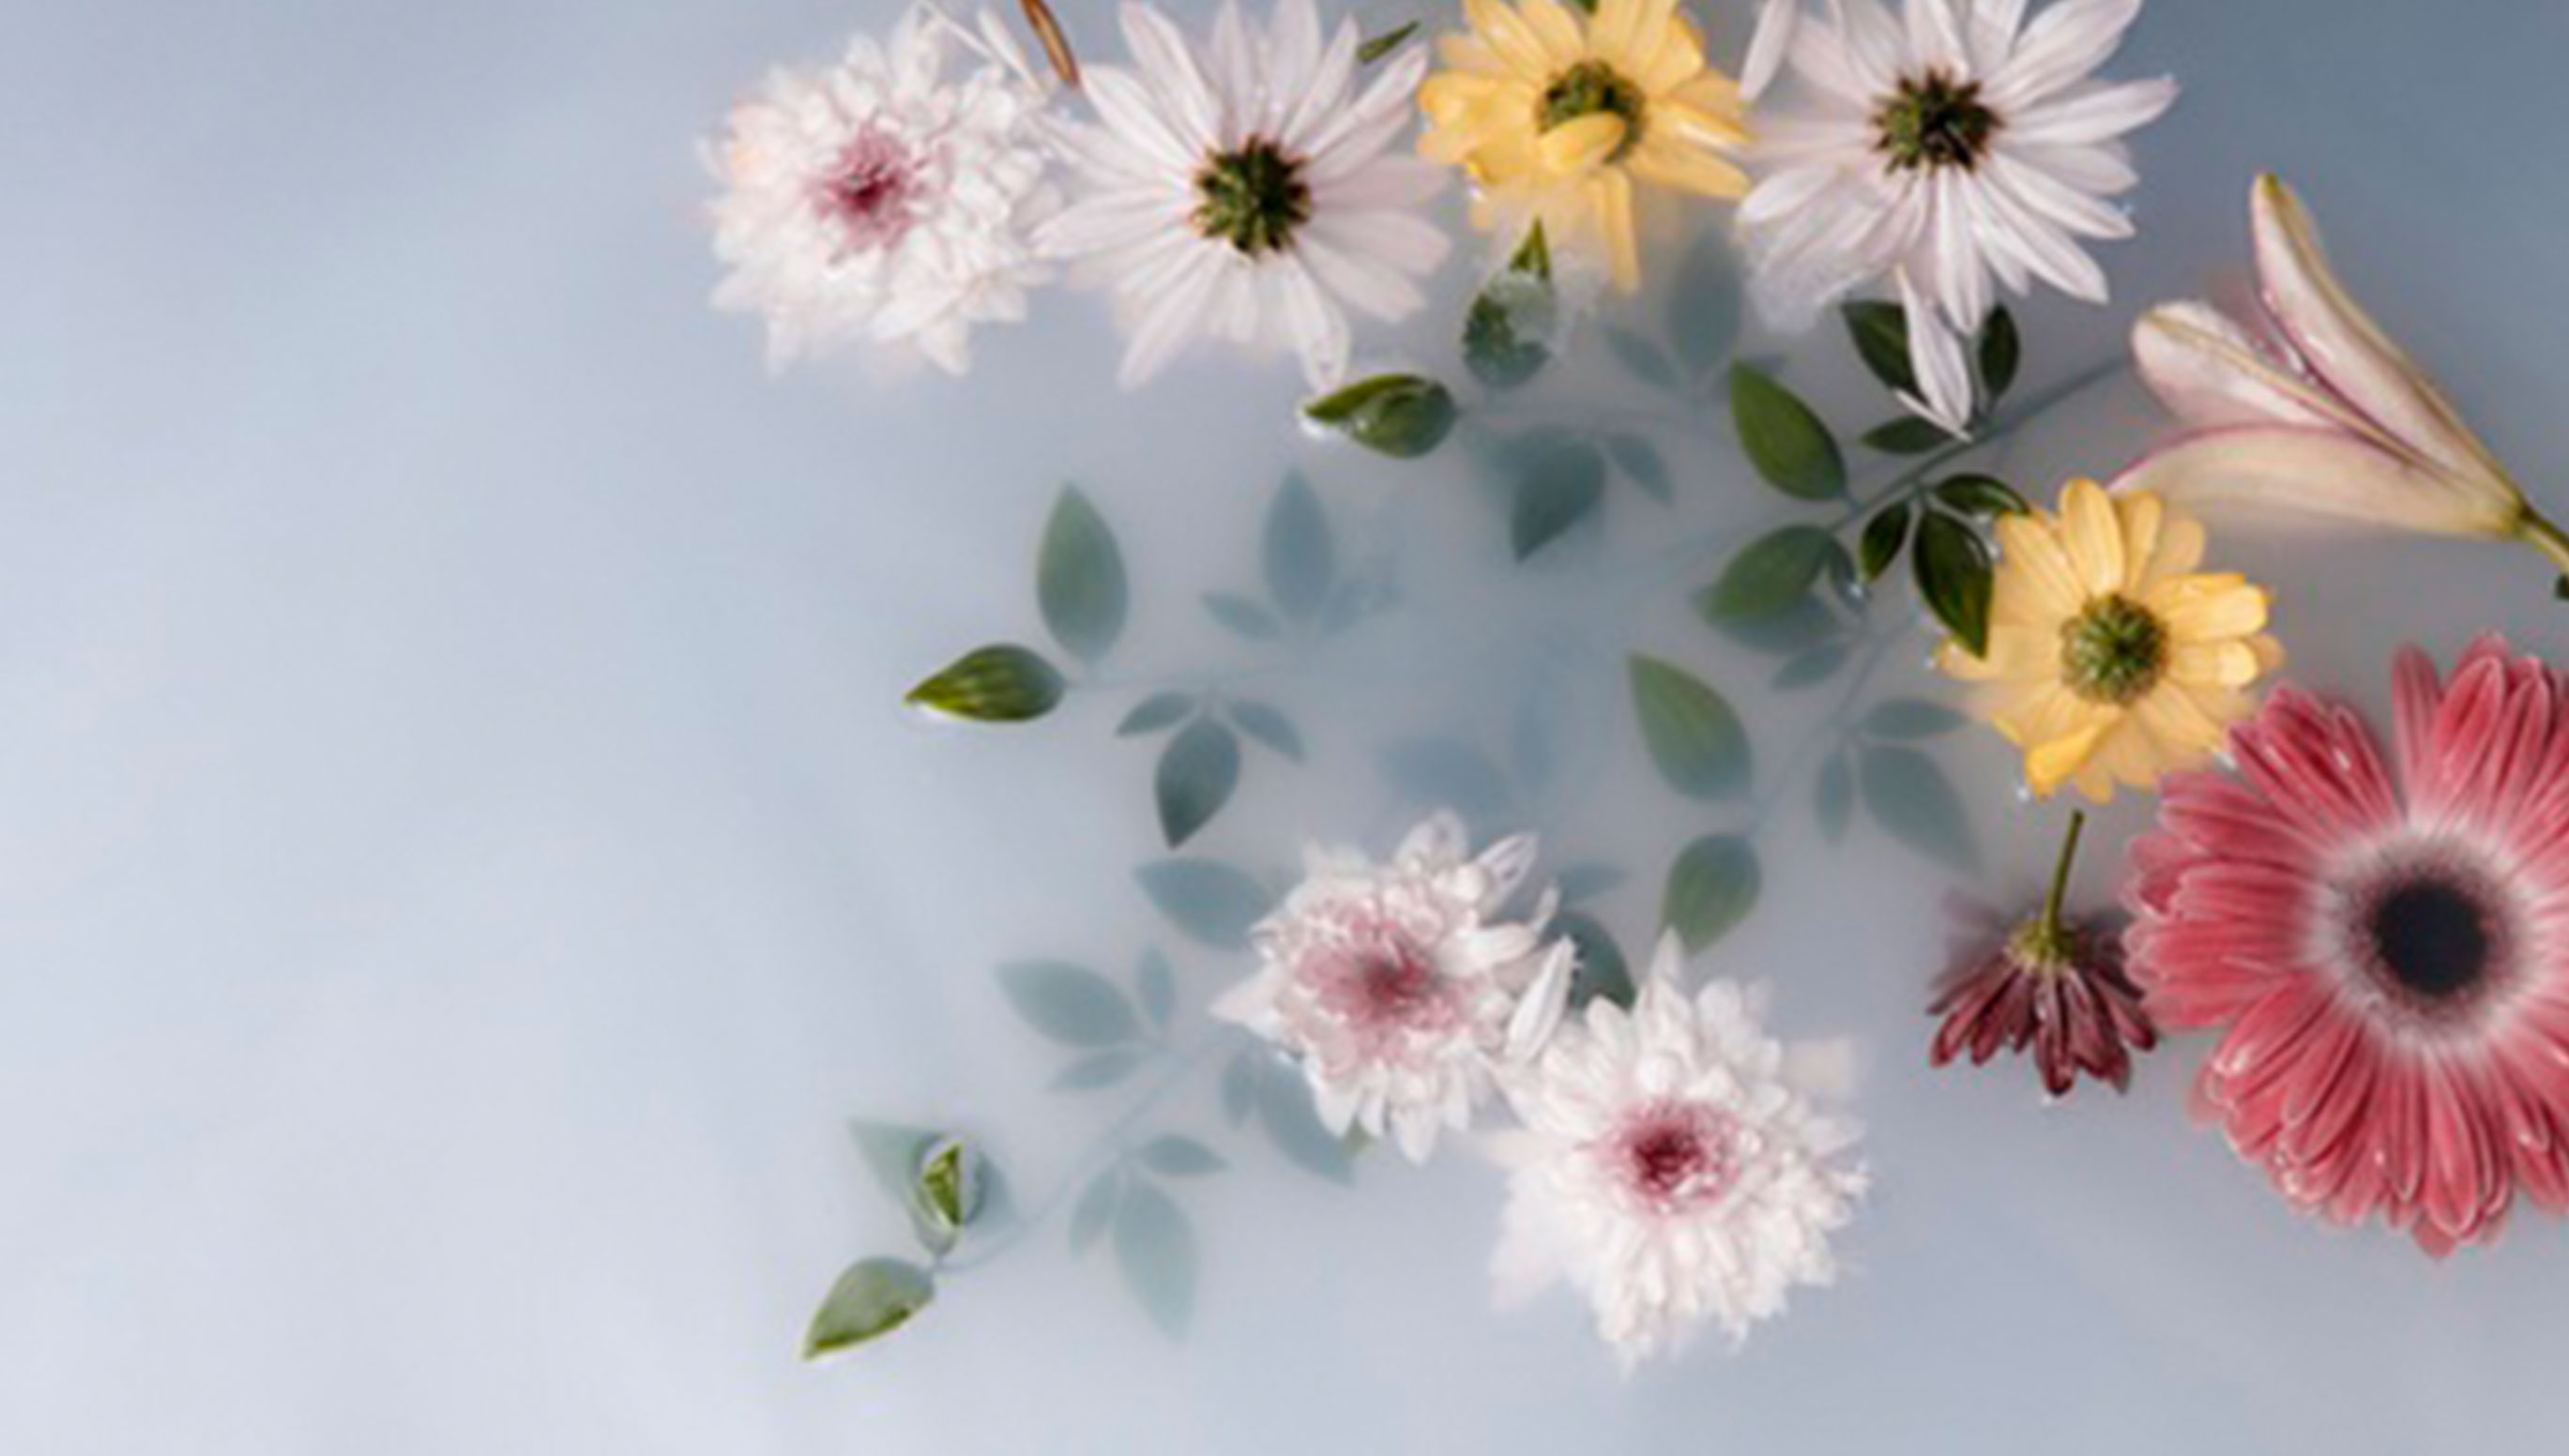 HHow to Preserve Flowers for Longer